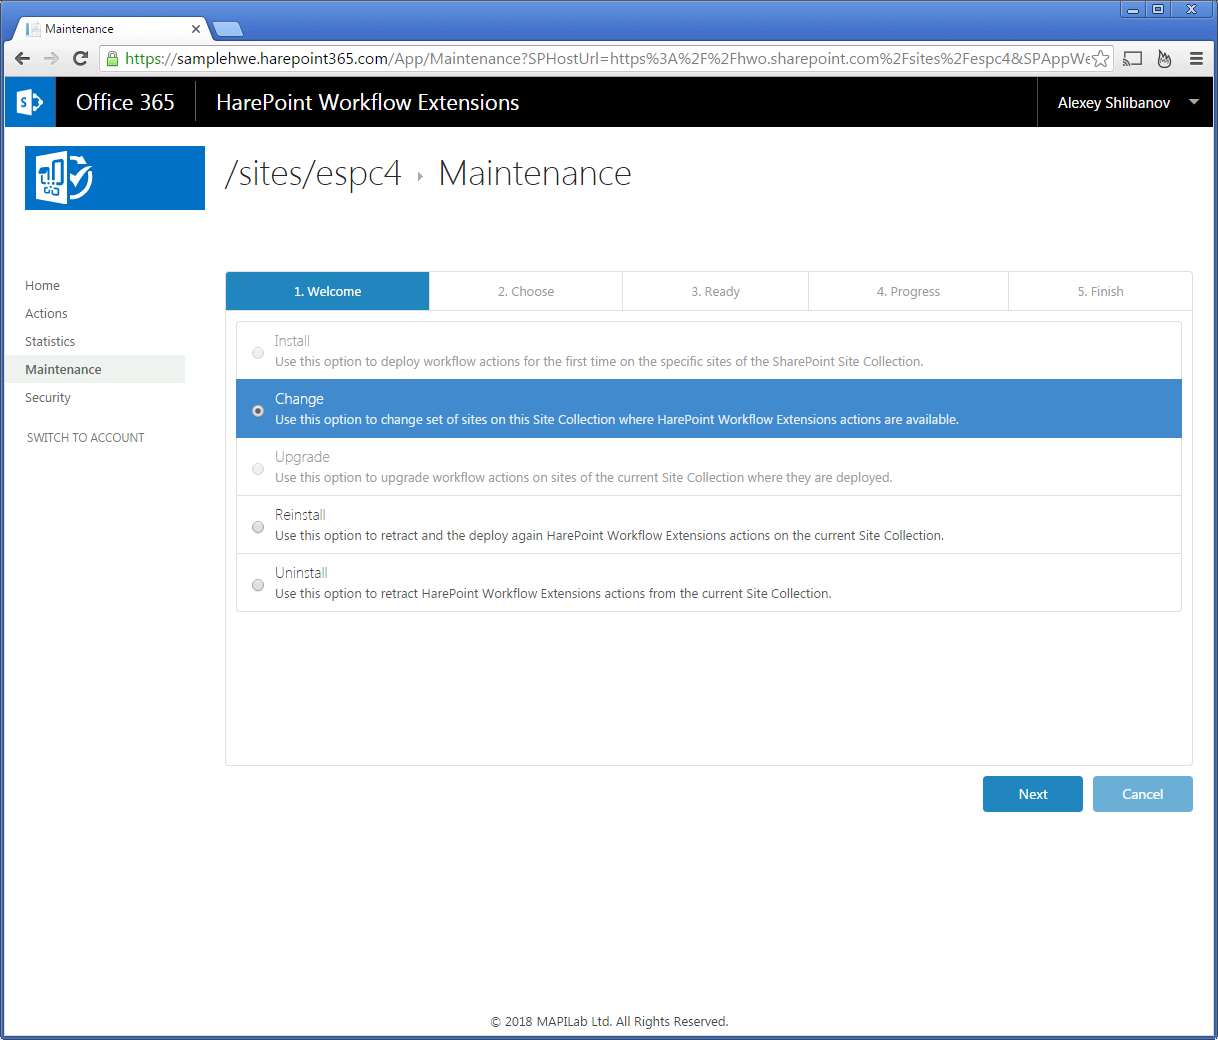 Harepoint Workflow Extensions For Office 365 Screenshots